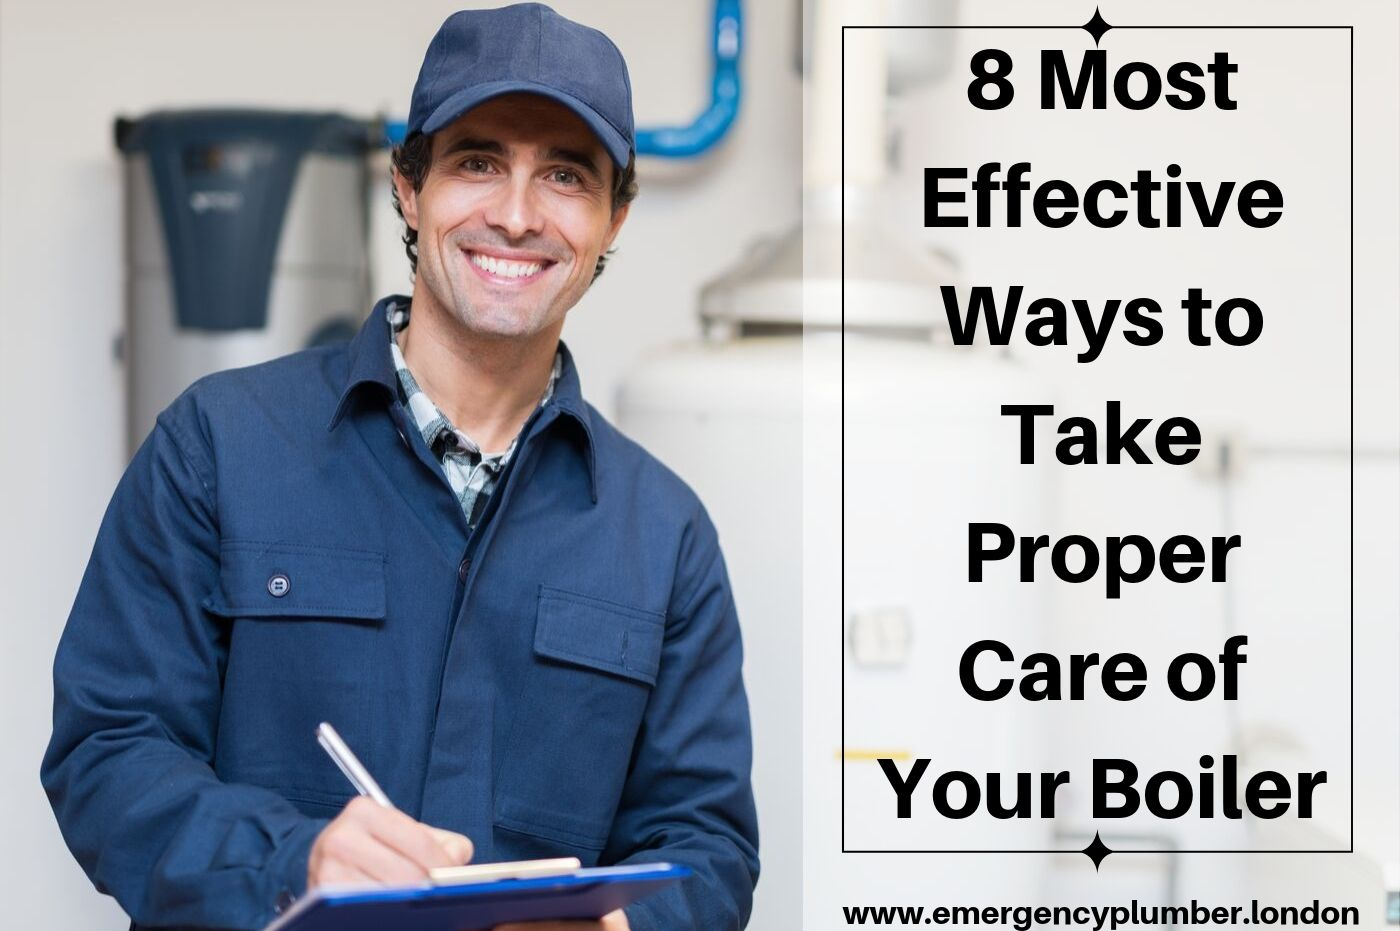 8 Most Effective Ways to Take Proper Care of Your Boiler